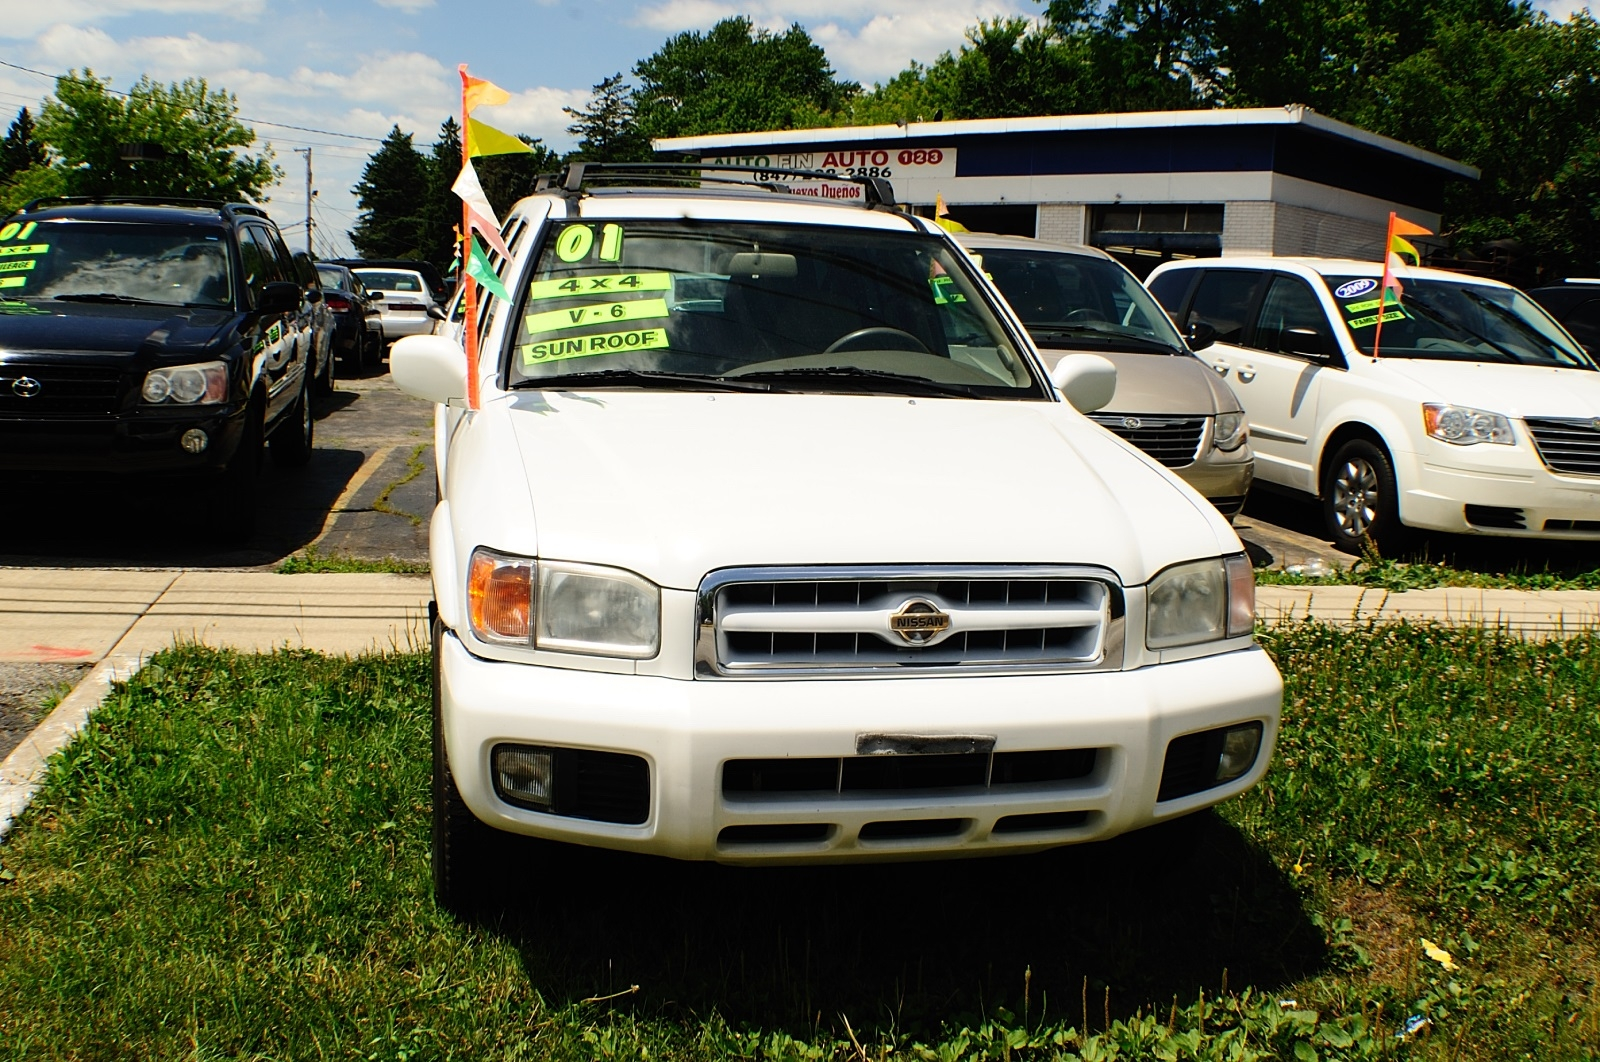 2001 Nissan Pathfinder White Used 4x4 SUV Sale Buffalo Grove Bollingbrook Carol Stream Illinois